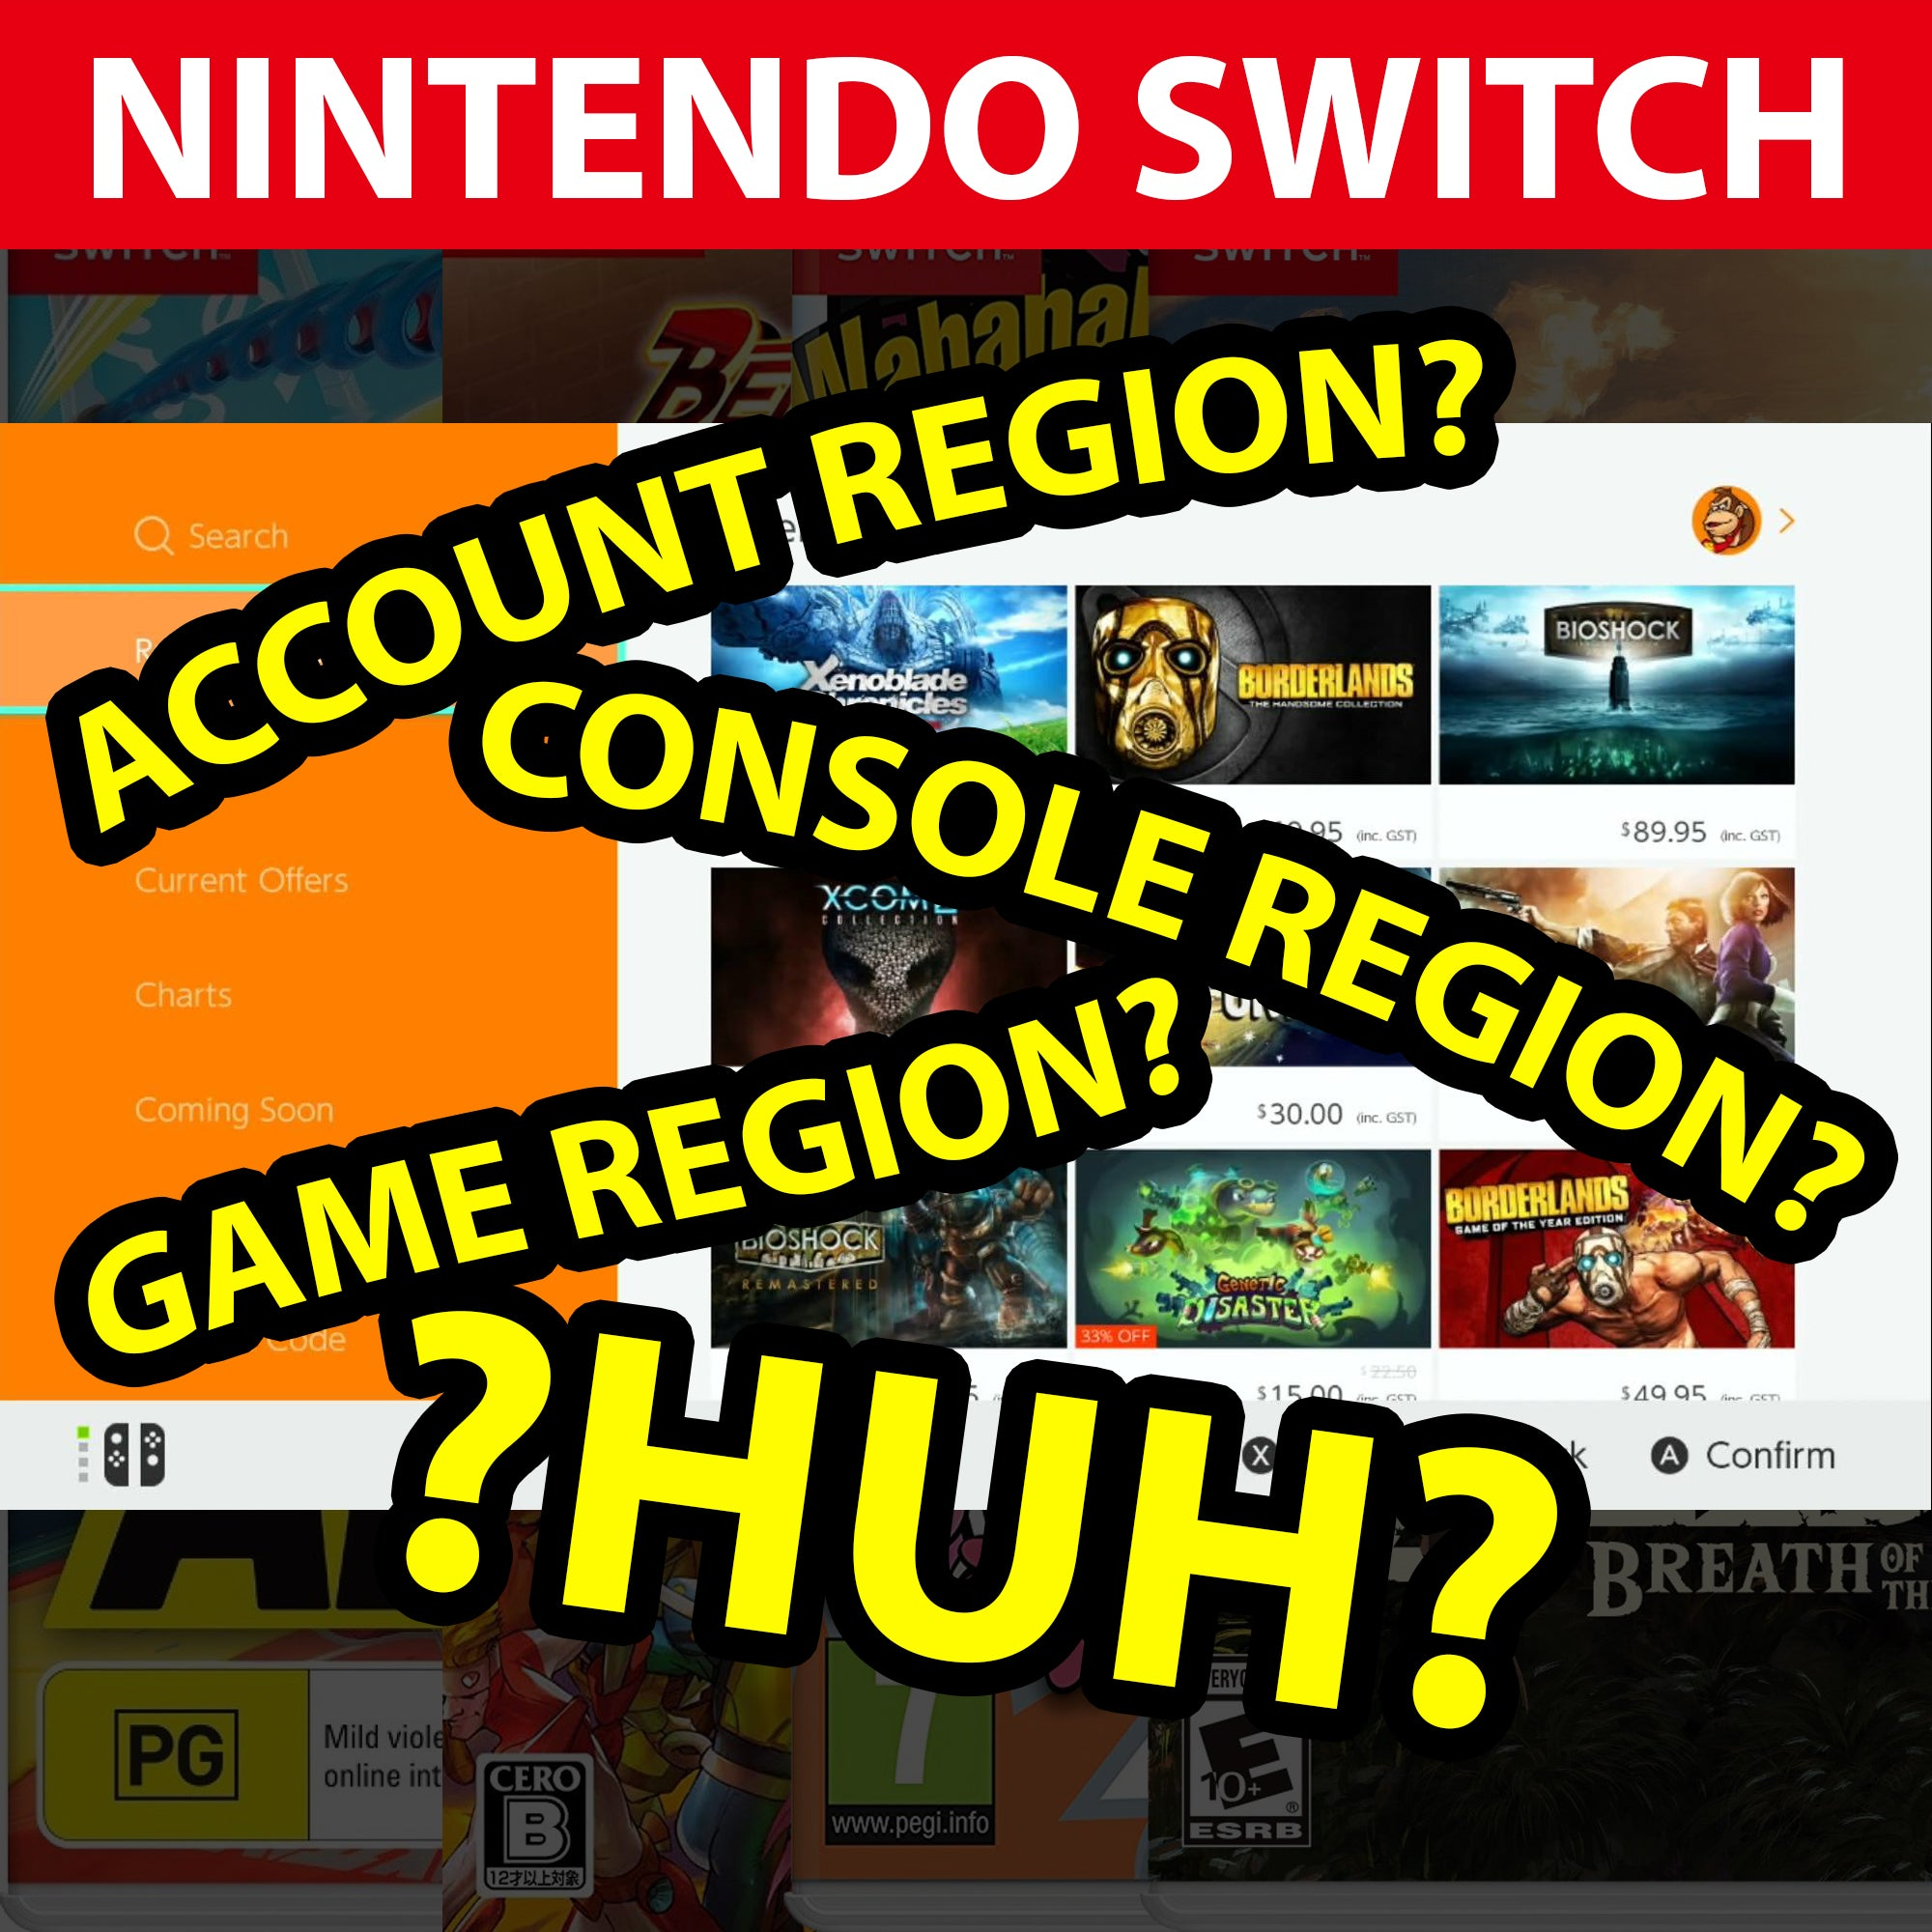 Nintendo Switch – Account Region, Console Region, Game Region… Huh?